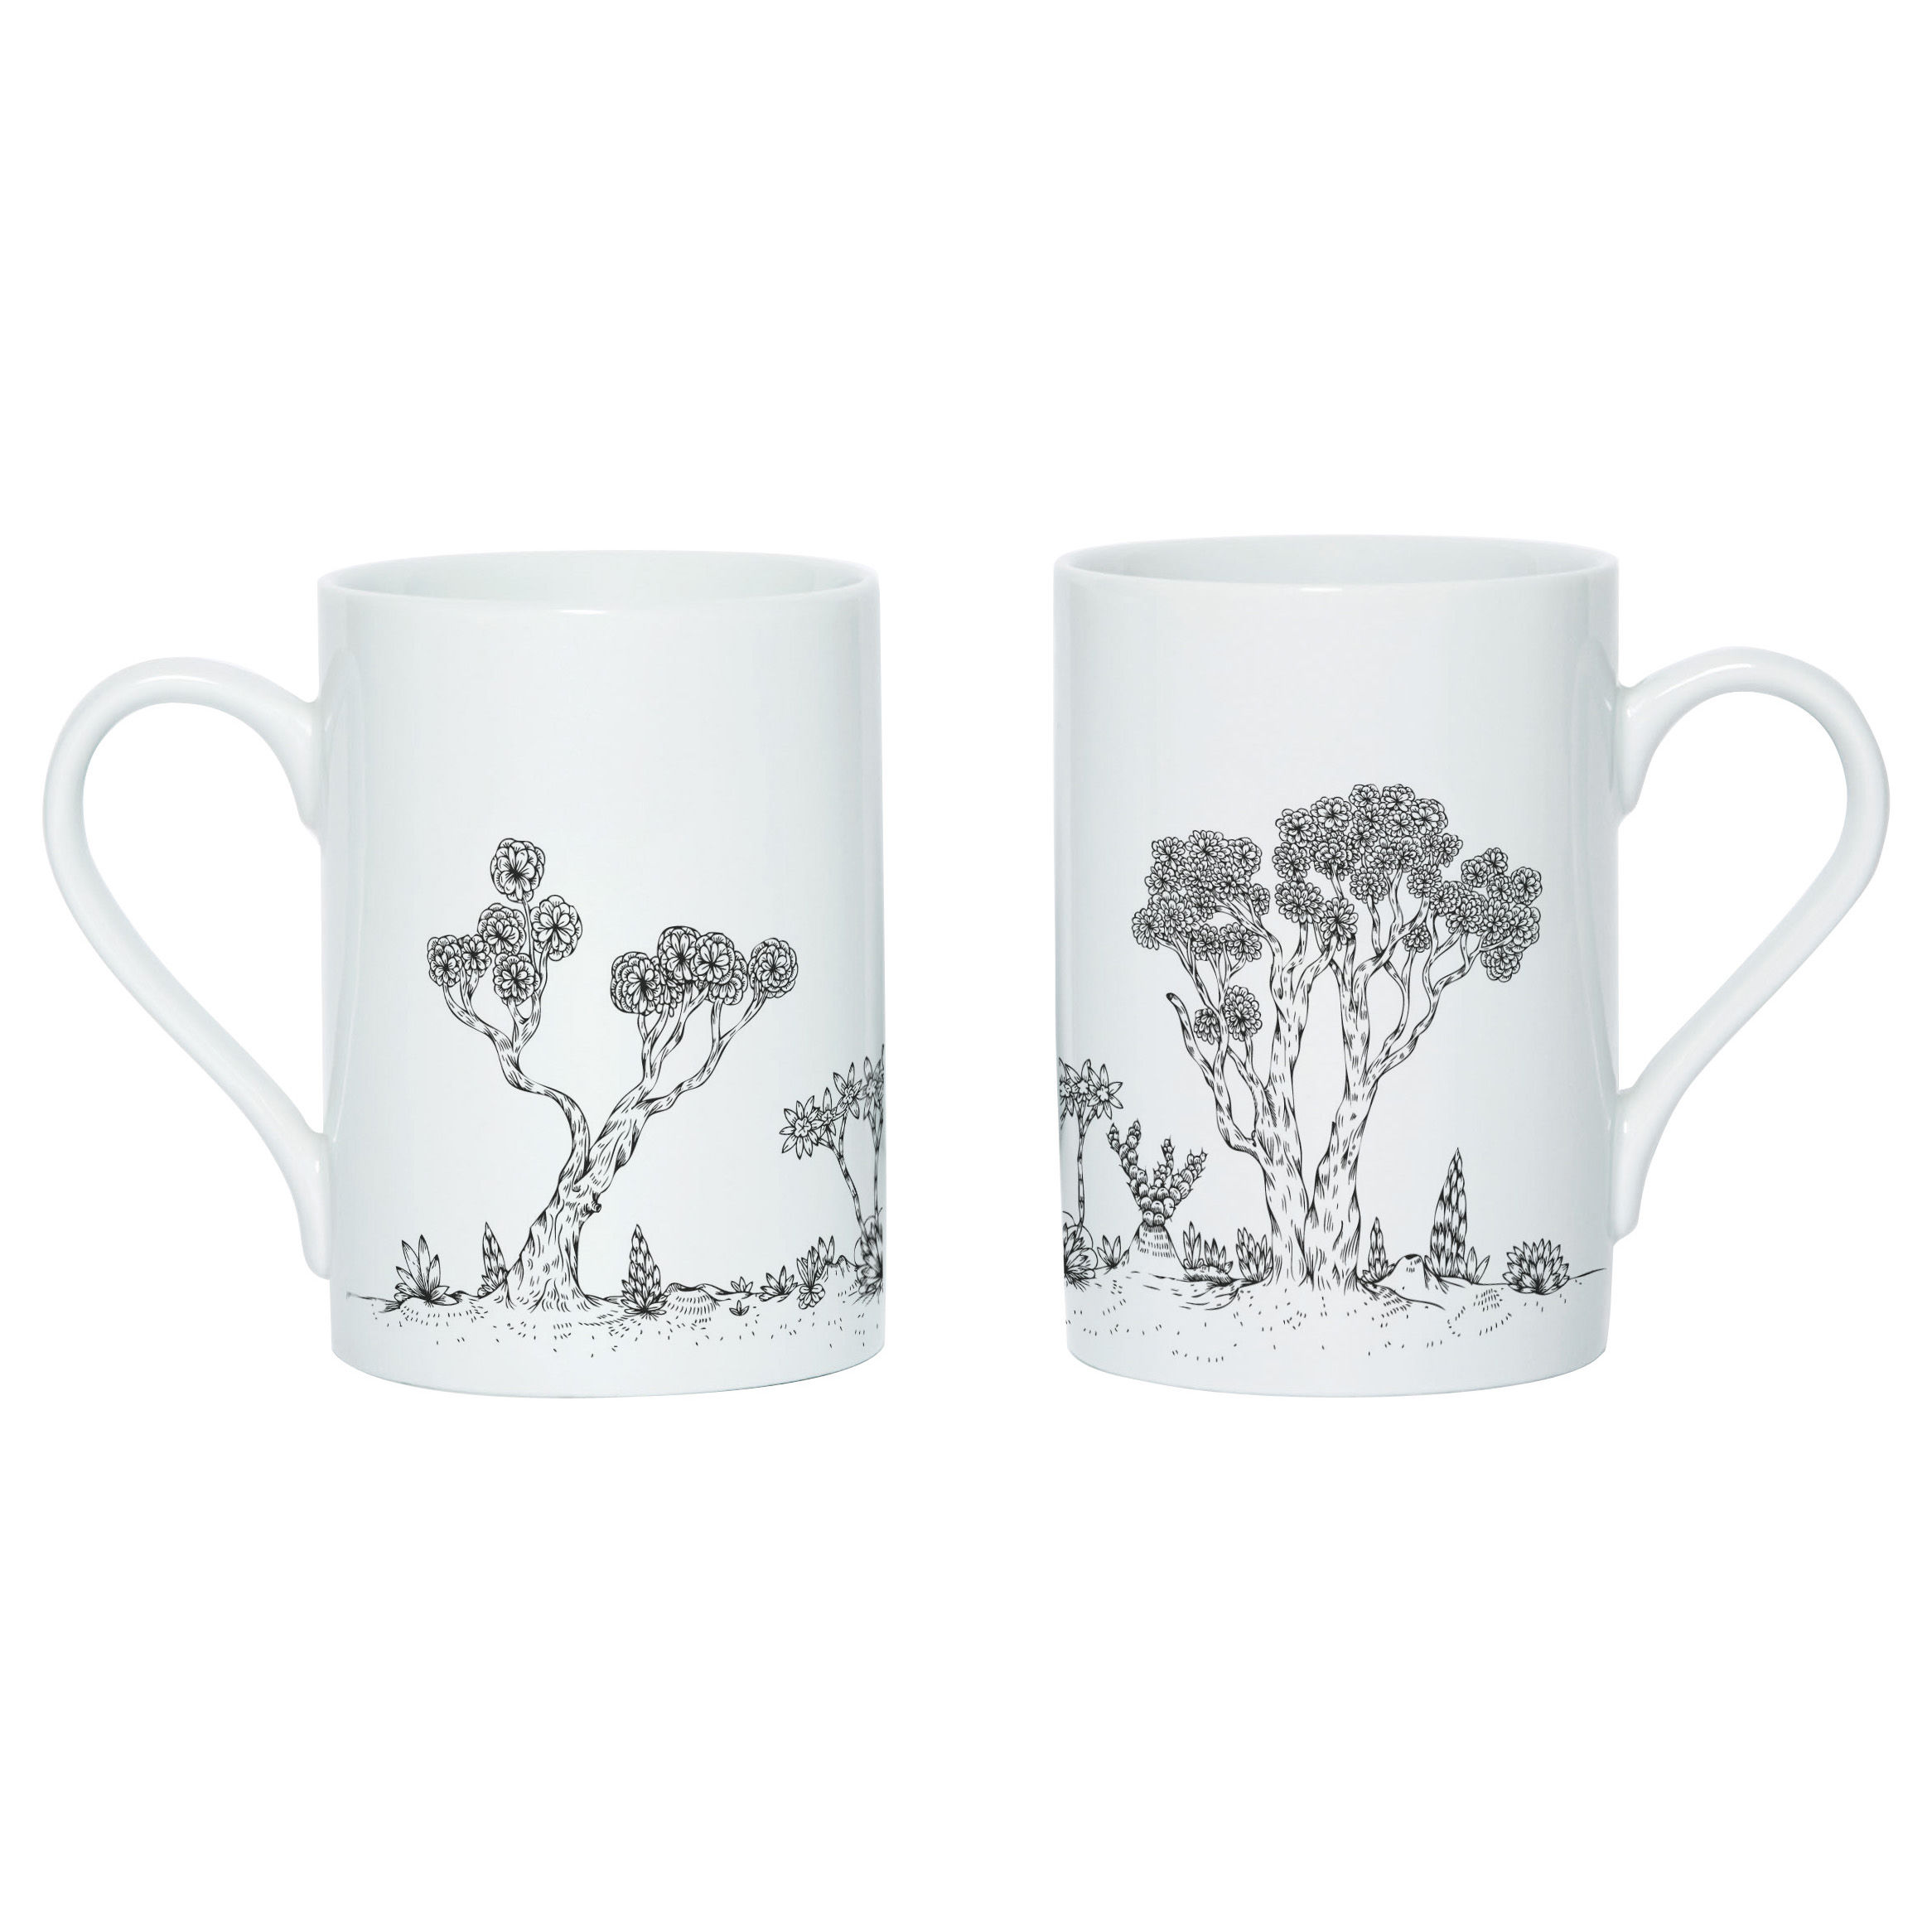 Tableware - Coffee Mugs & Tea Cups - Landscape Mug - Screen printed mug by Domestic - White & black - China